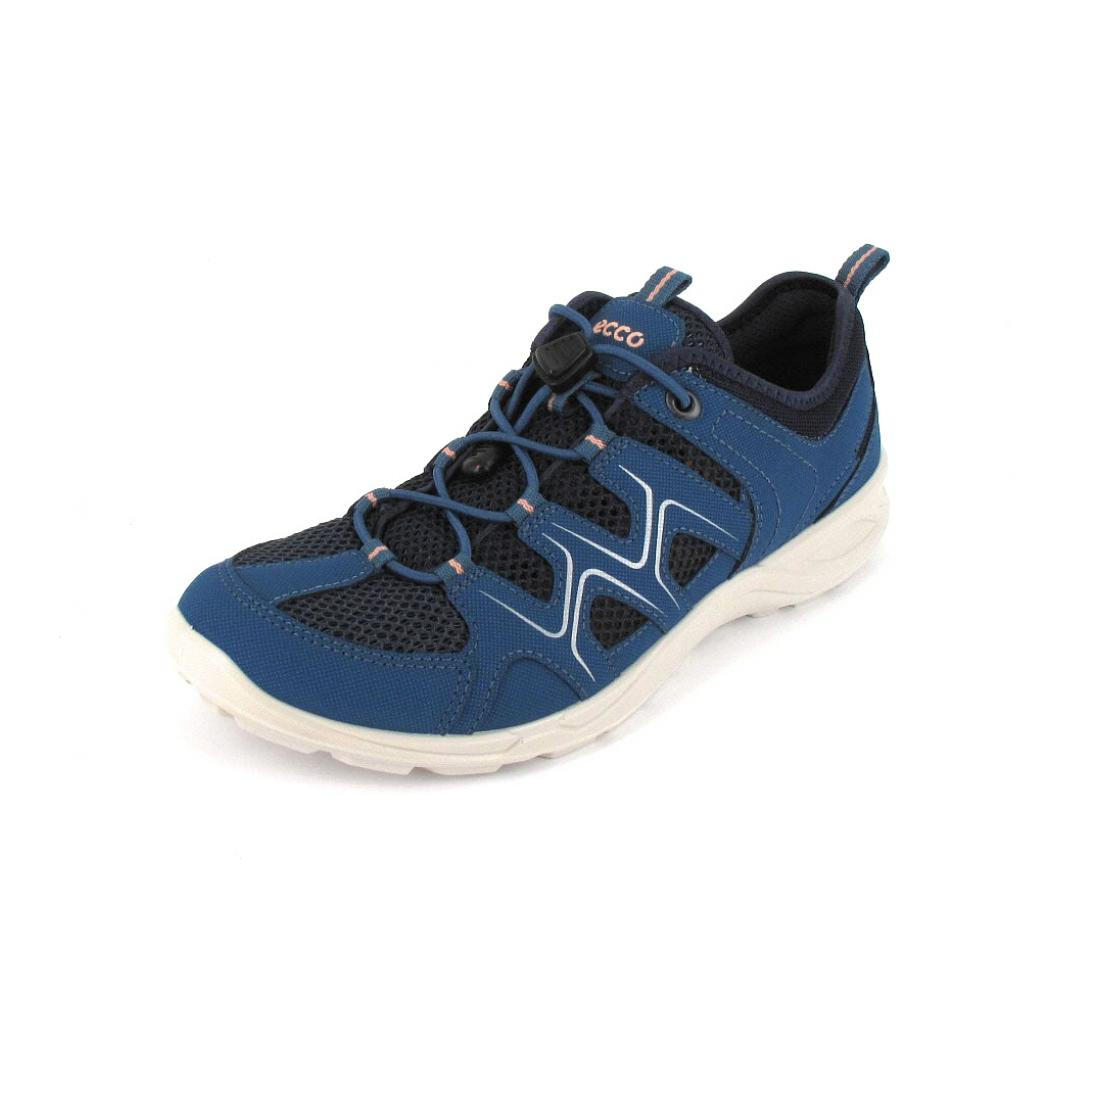 Ecco Sneaker terracruise LT W Indian T